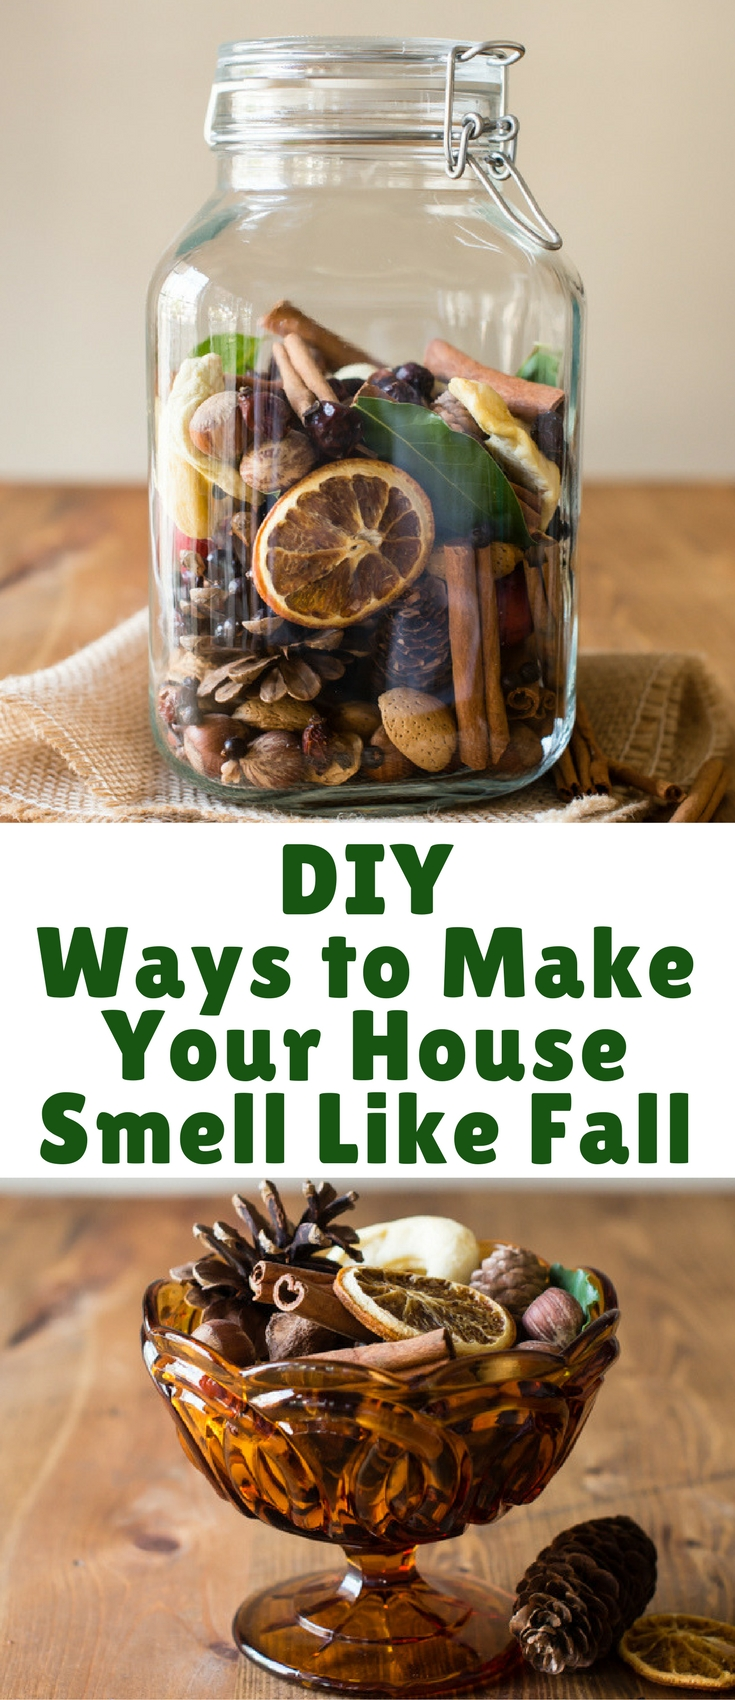 3 Easy Diy Ways To Make Your House Smell Like Fall